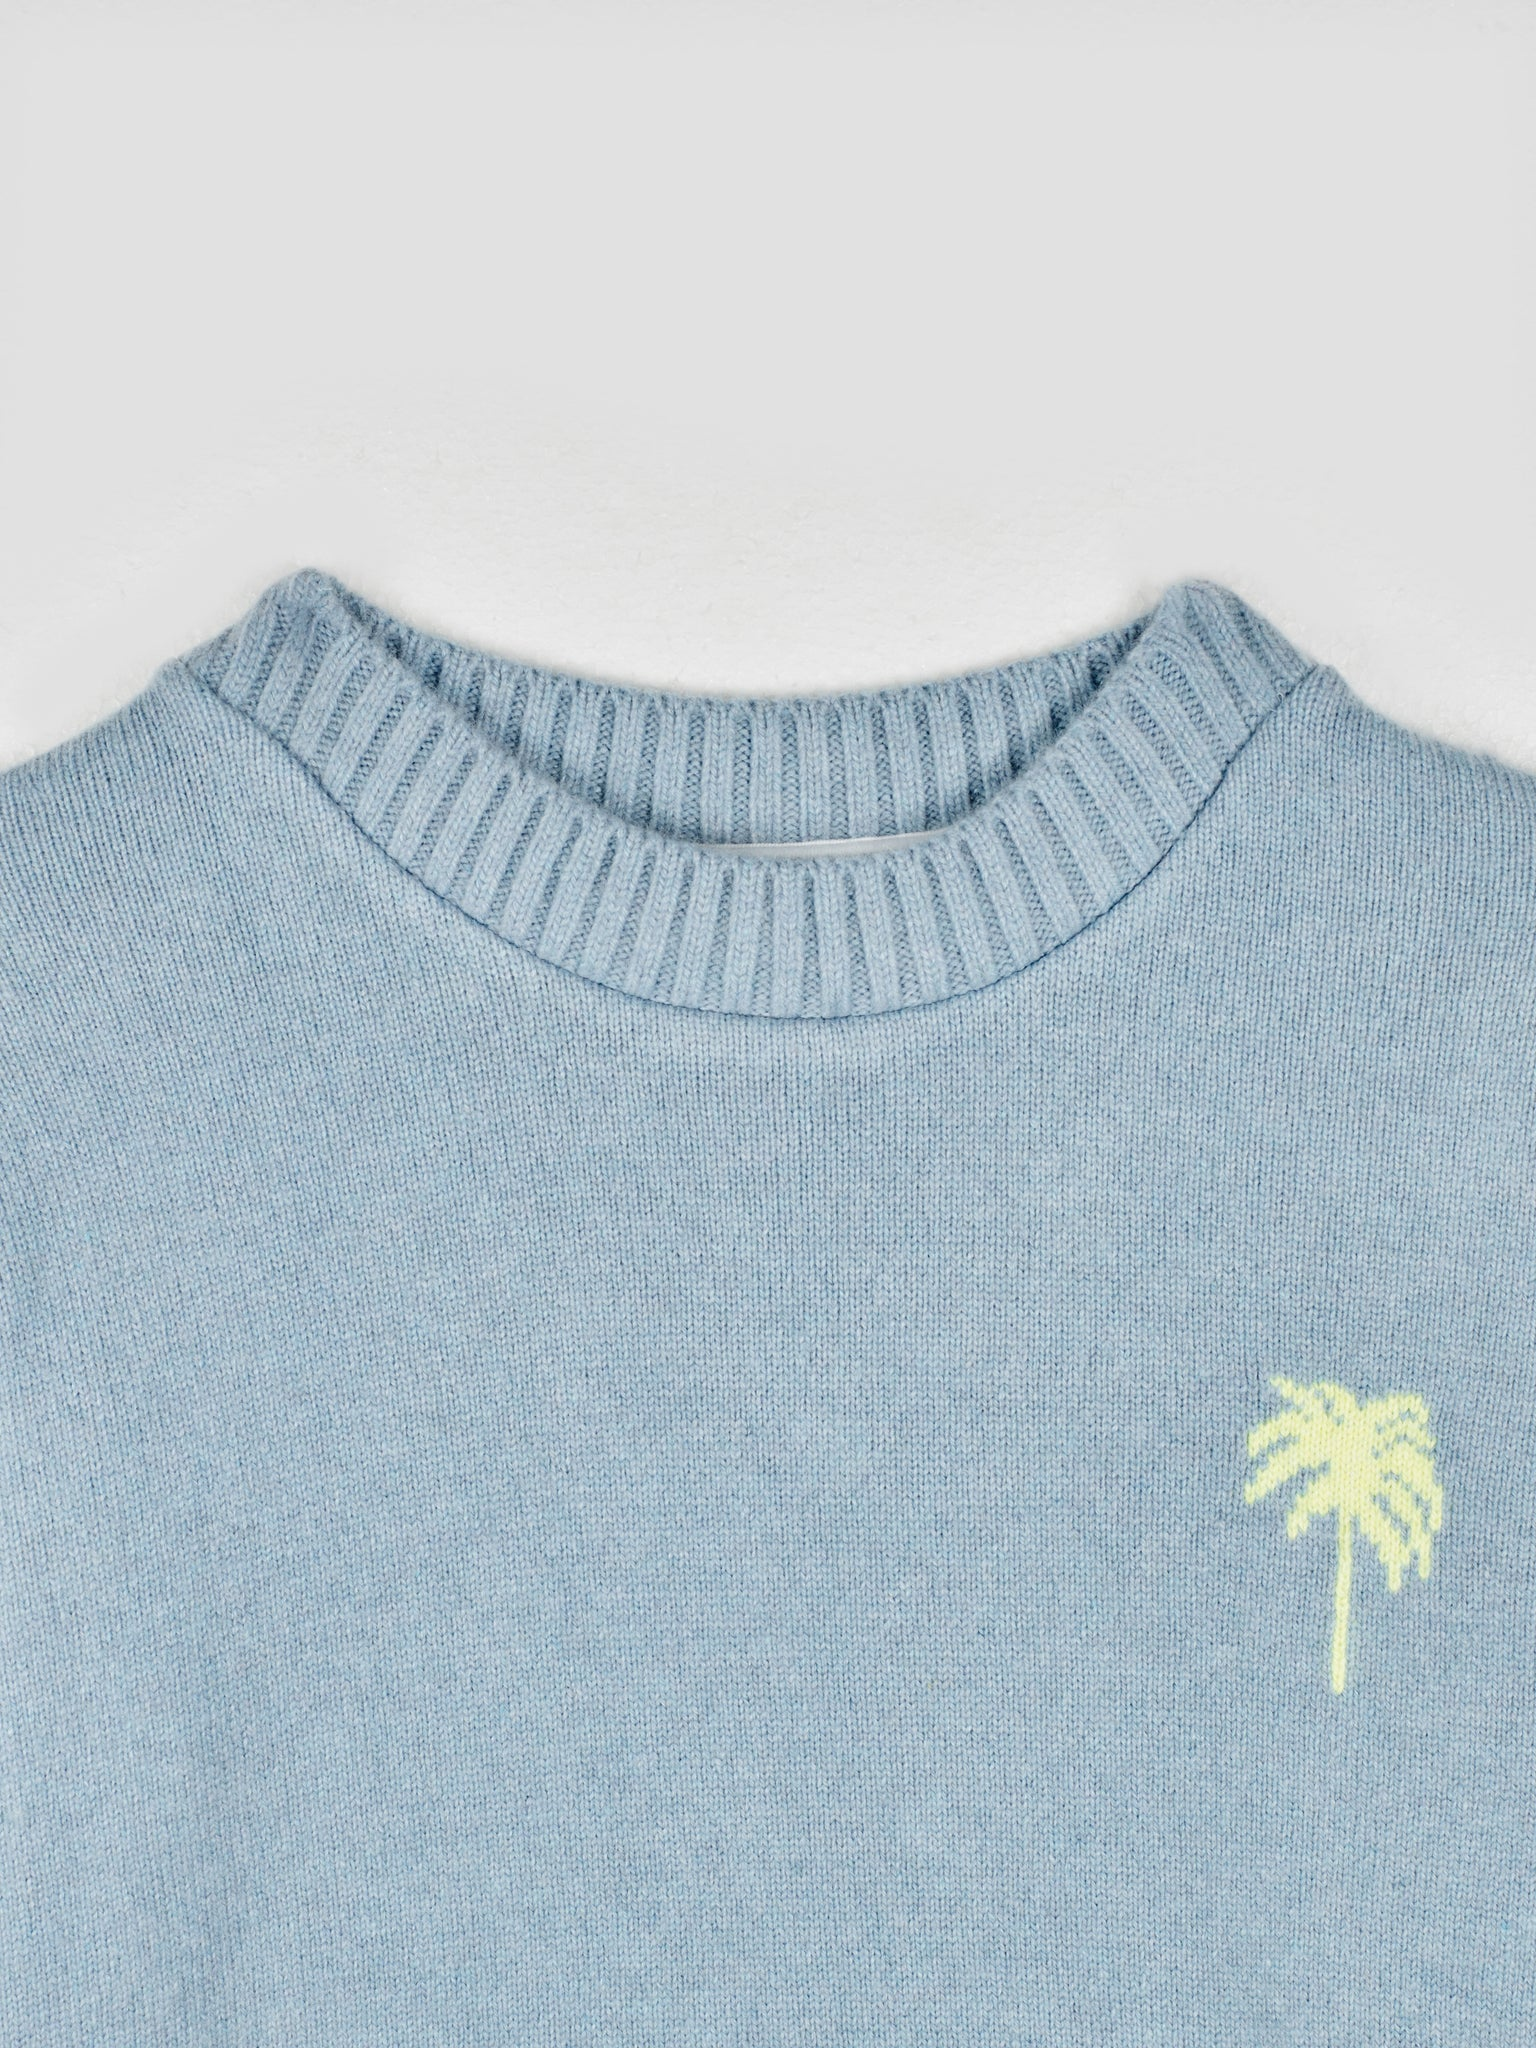 The Elder Statesman Palm Tree Cashmere Sweater